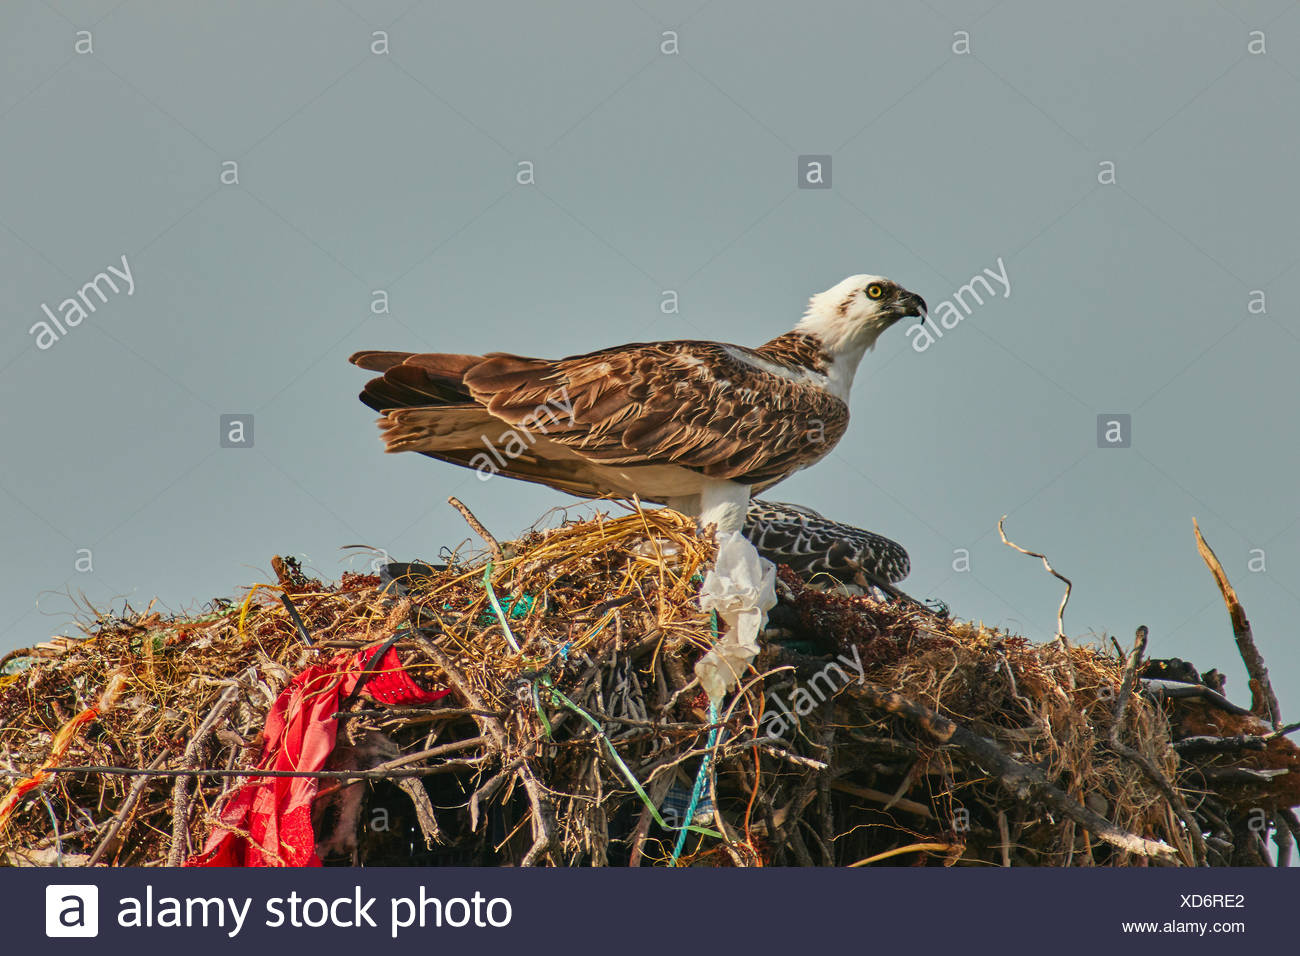 An adult Osprey, Pandion haliaetus, and its chick on a nest along the Providenciales coast. - Stock Image